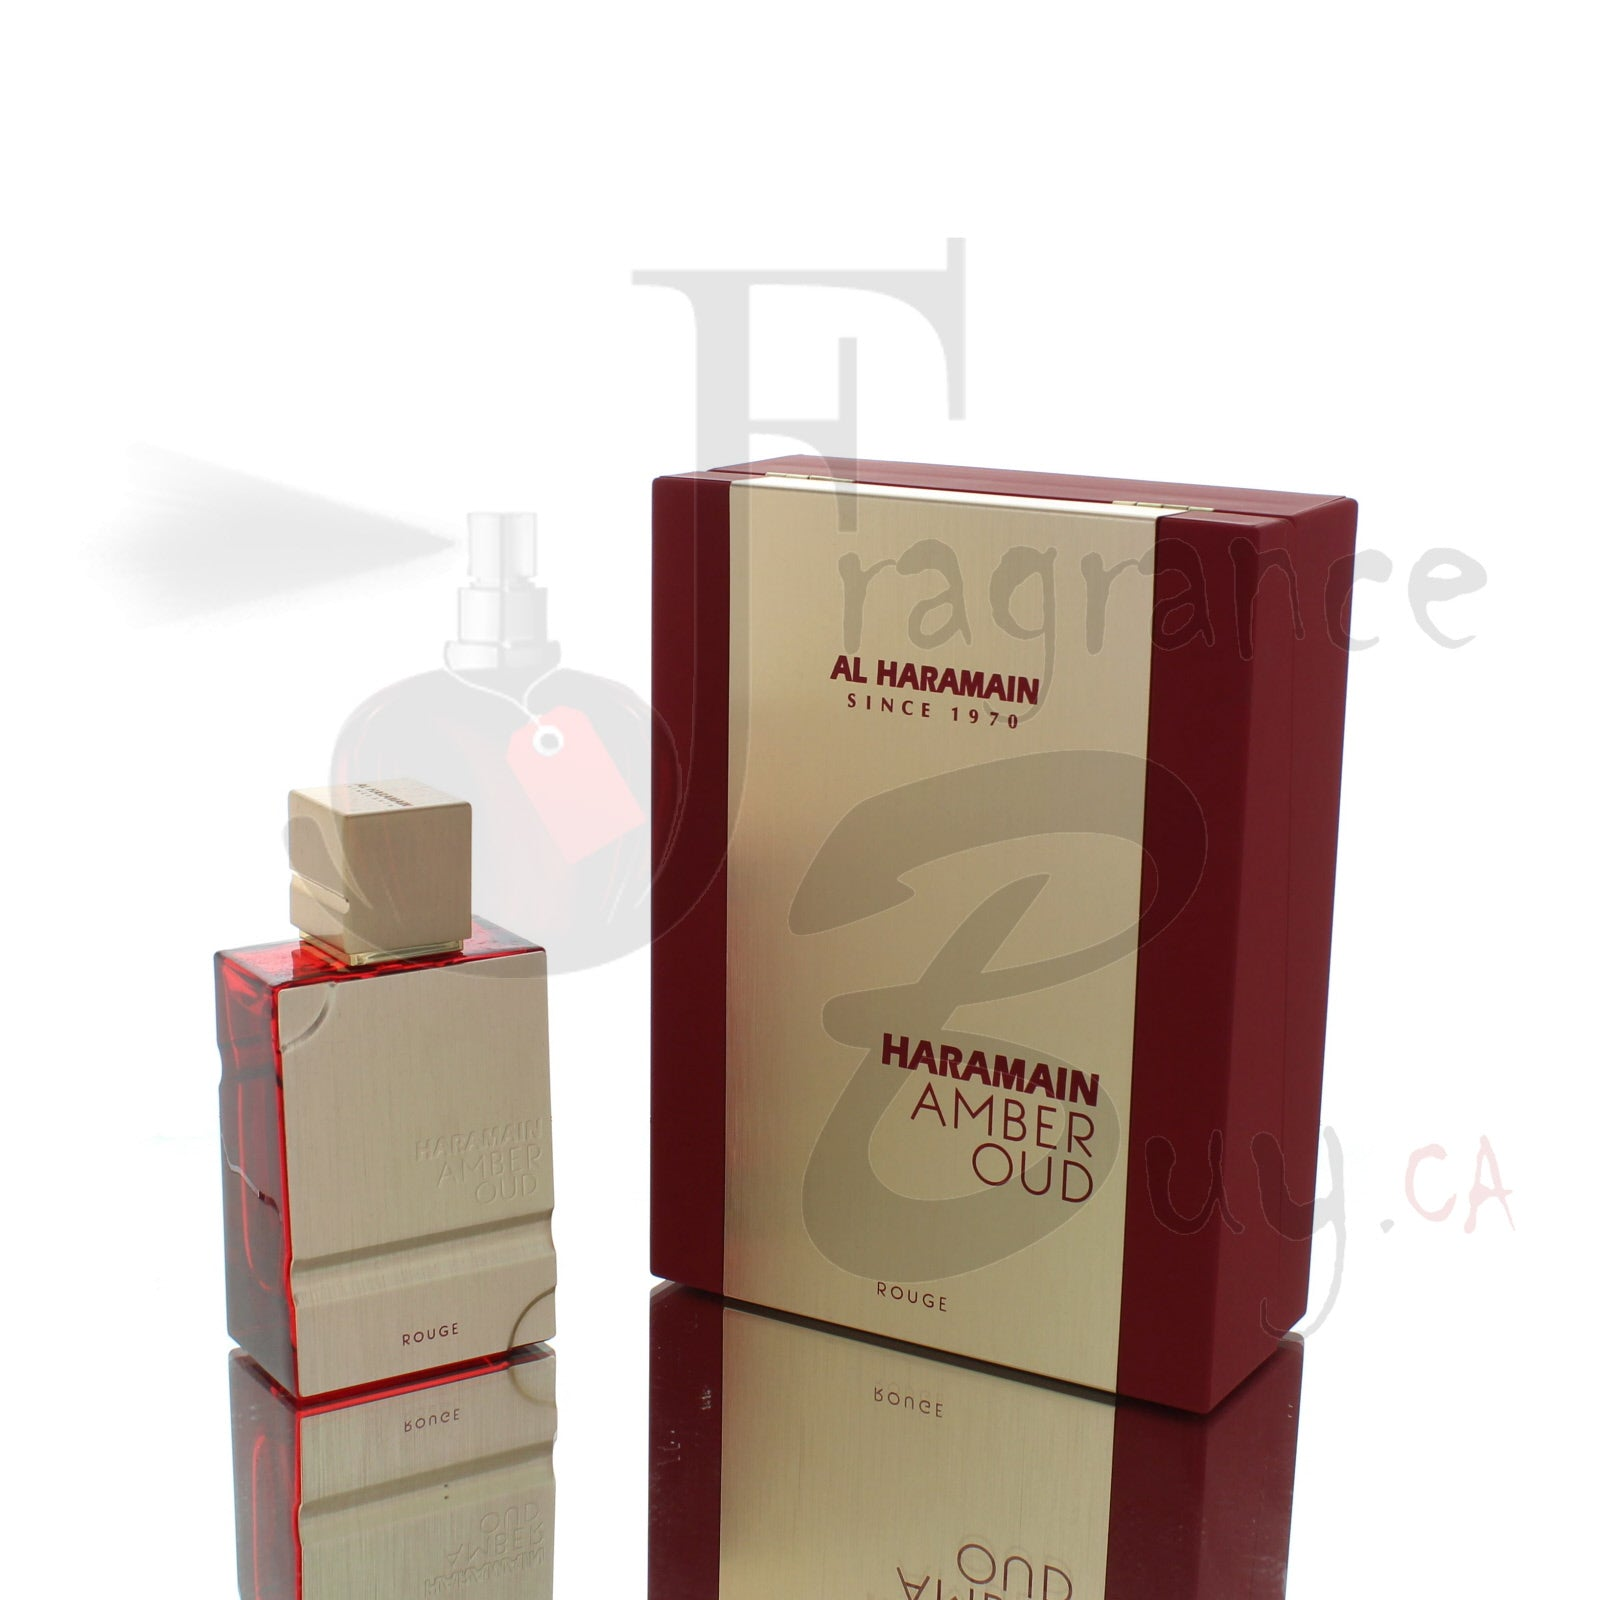 Al Haramain Amber Oud Rouge (BR540 Clone) For Man/Woman